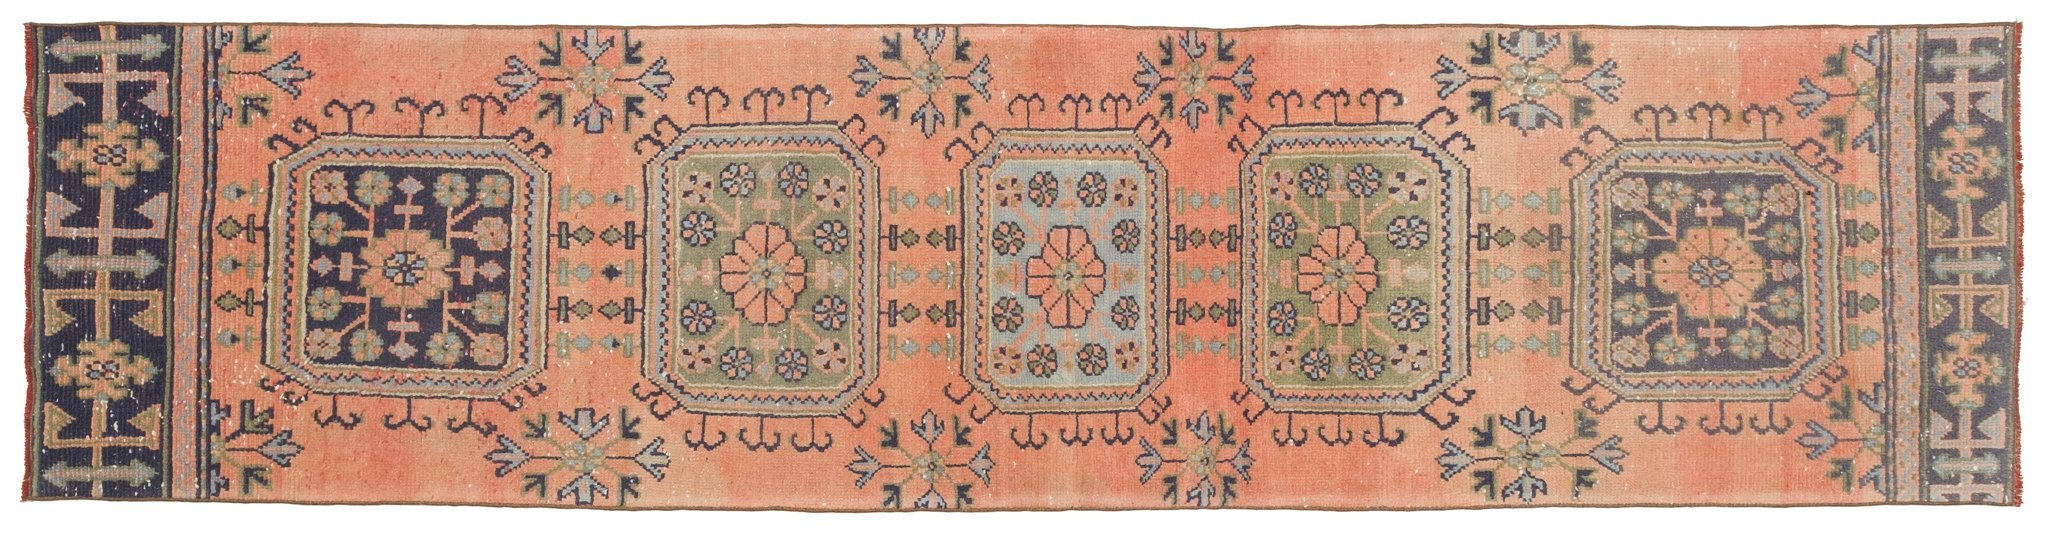 Vintage Turkish Runner Rug Shefquet